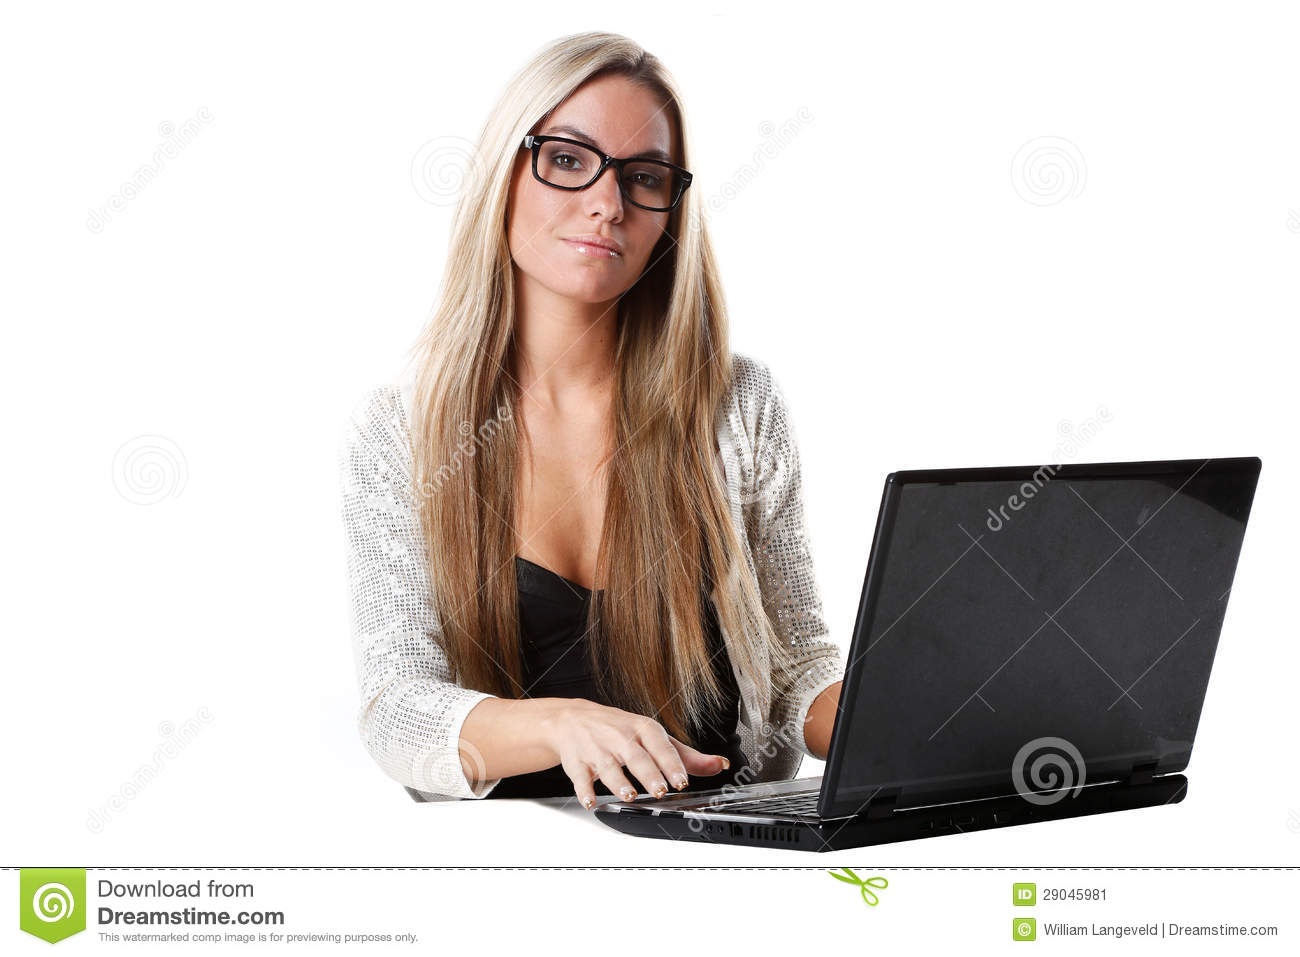 woman with long blond hair works as secretary with a laptop computer